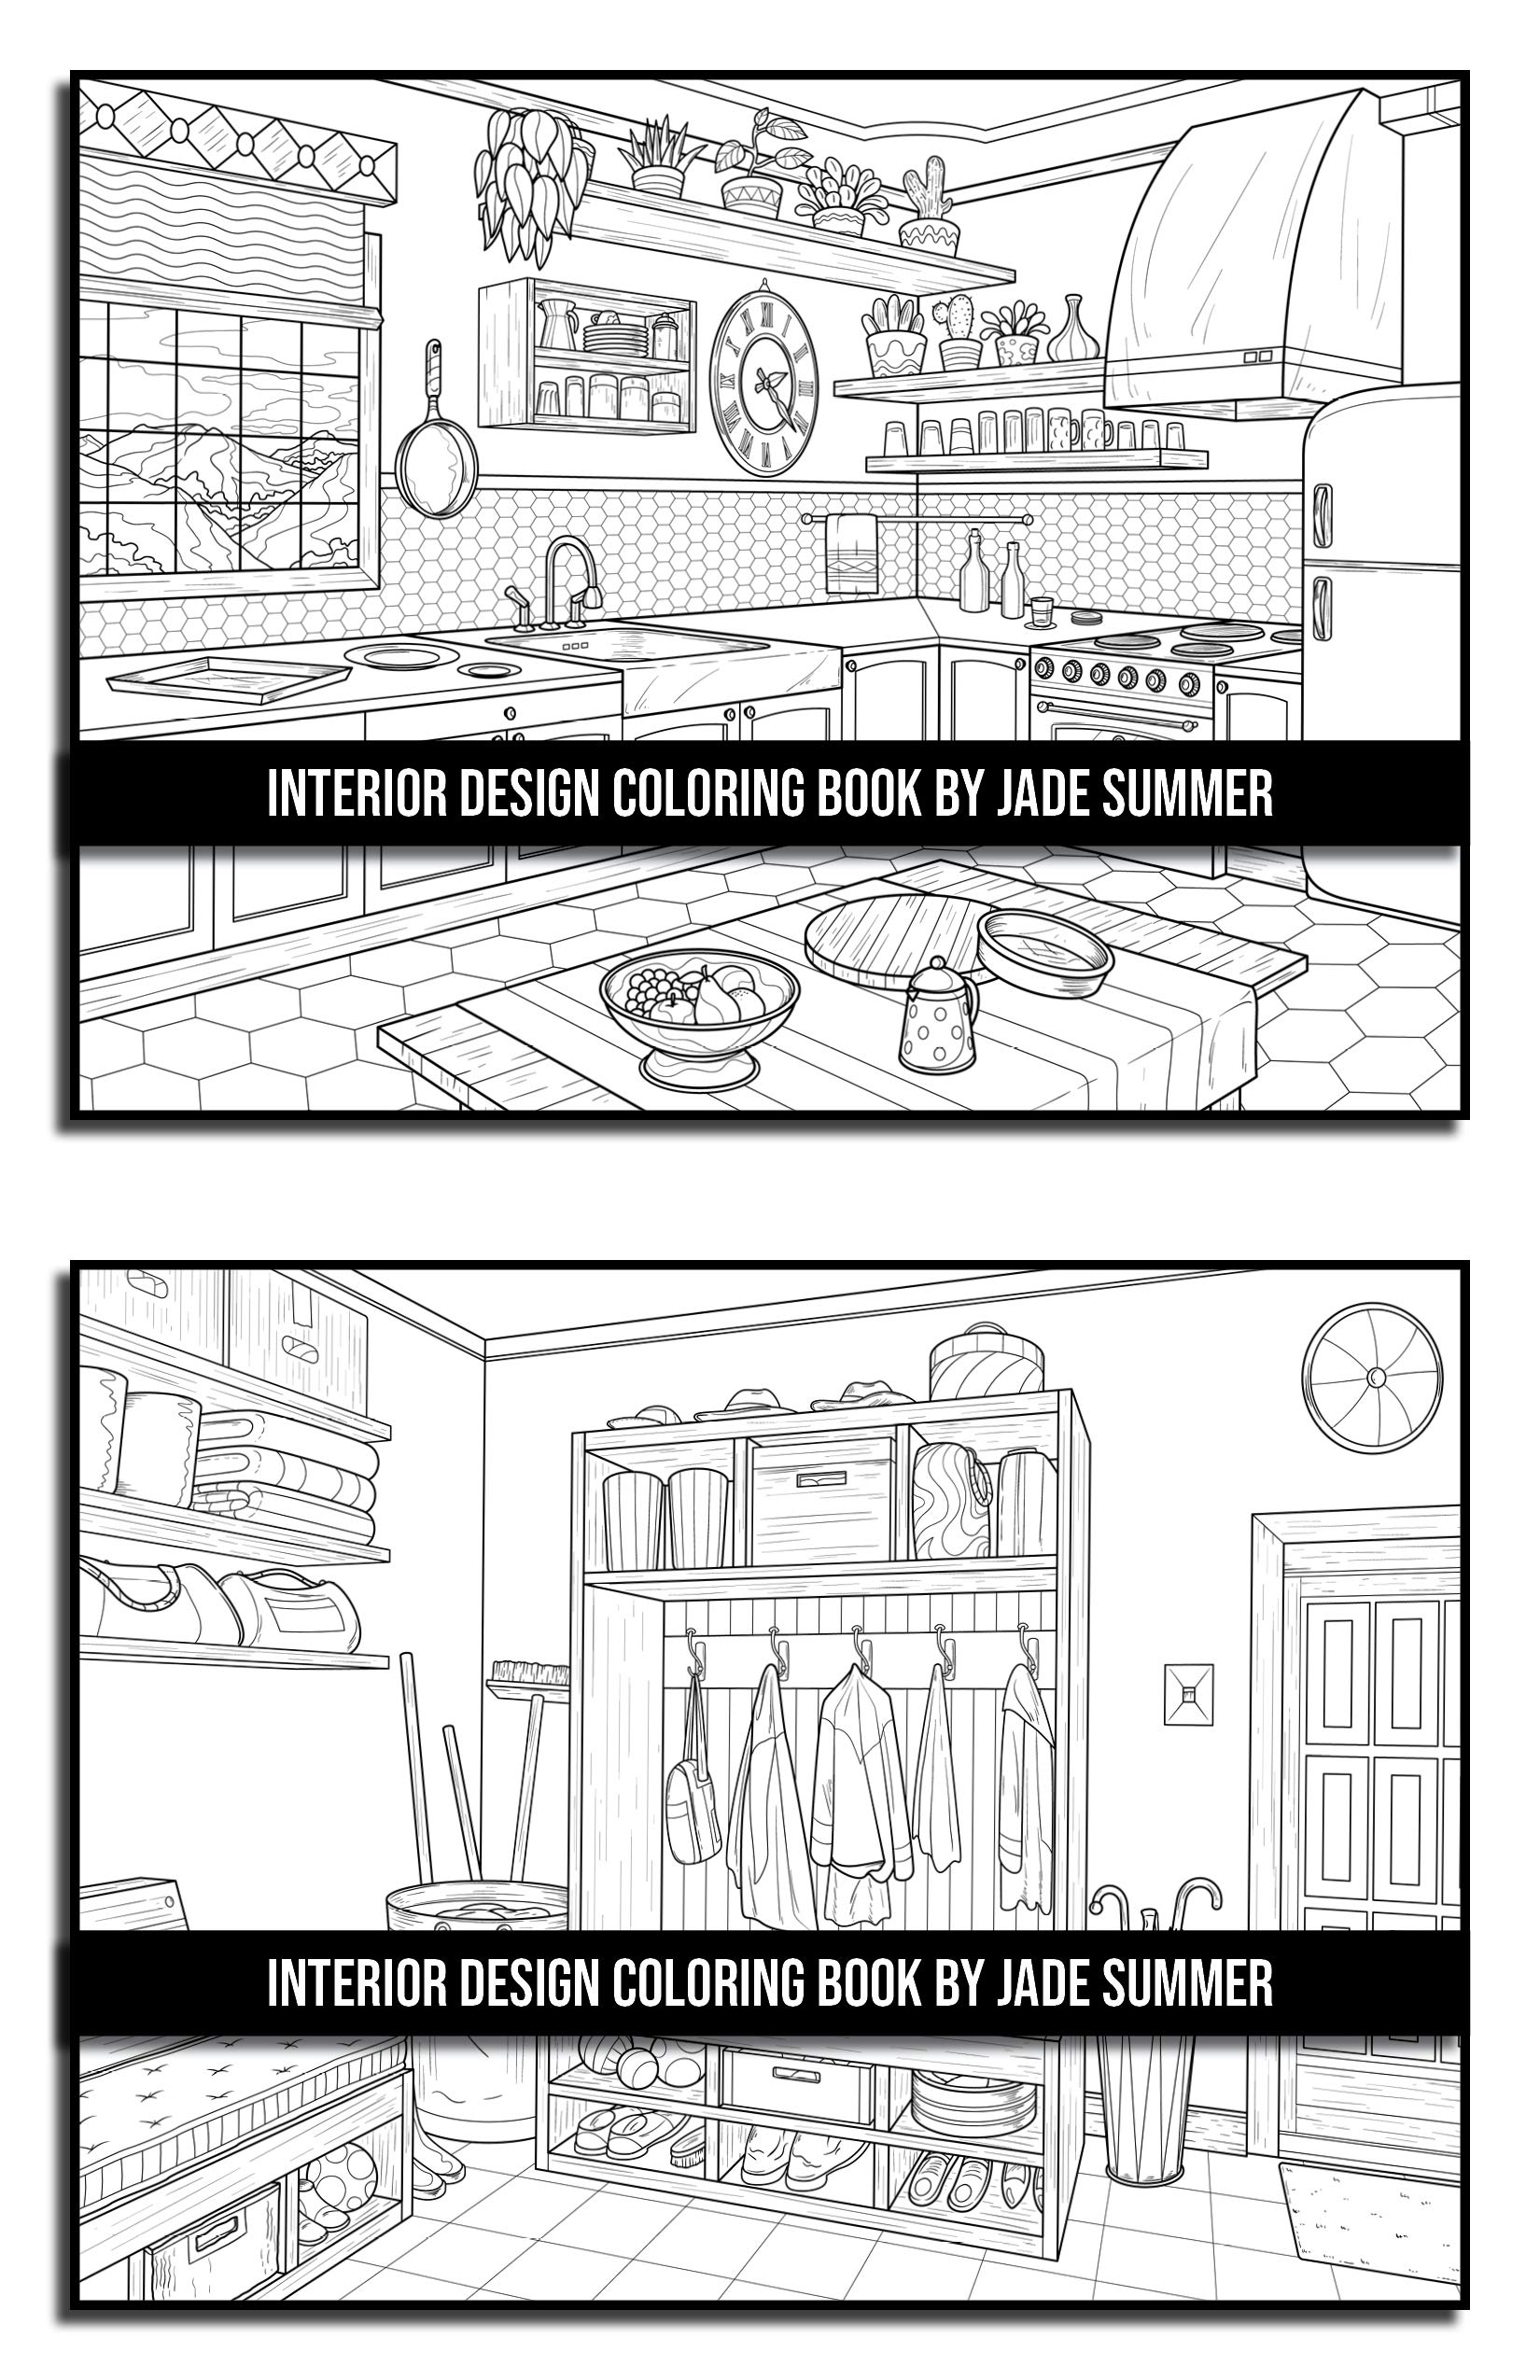 Interior Design Coloring Book An Adult Coloring Book With Inspirational Home Designs Fun Room Ideas And Beautifully Decorated Houses For Relaxation Summer Jade 9798621874339 Amazon Com Books